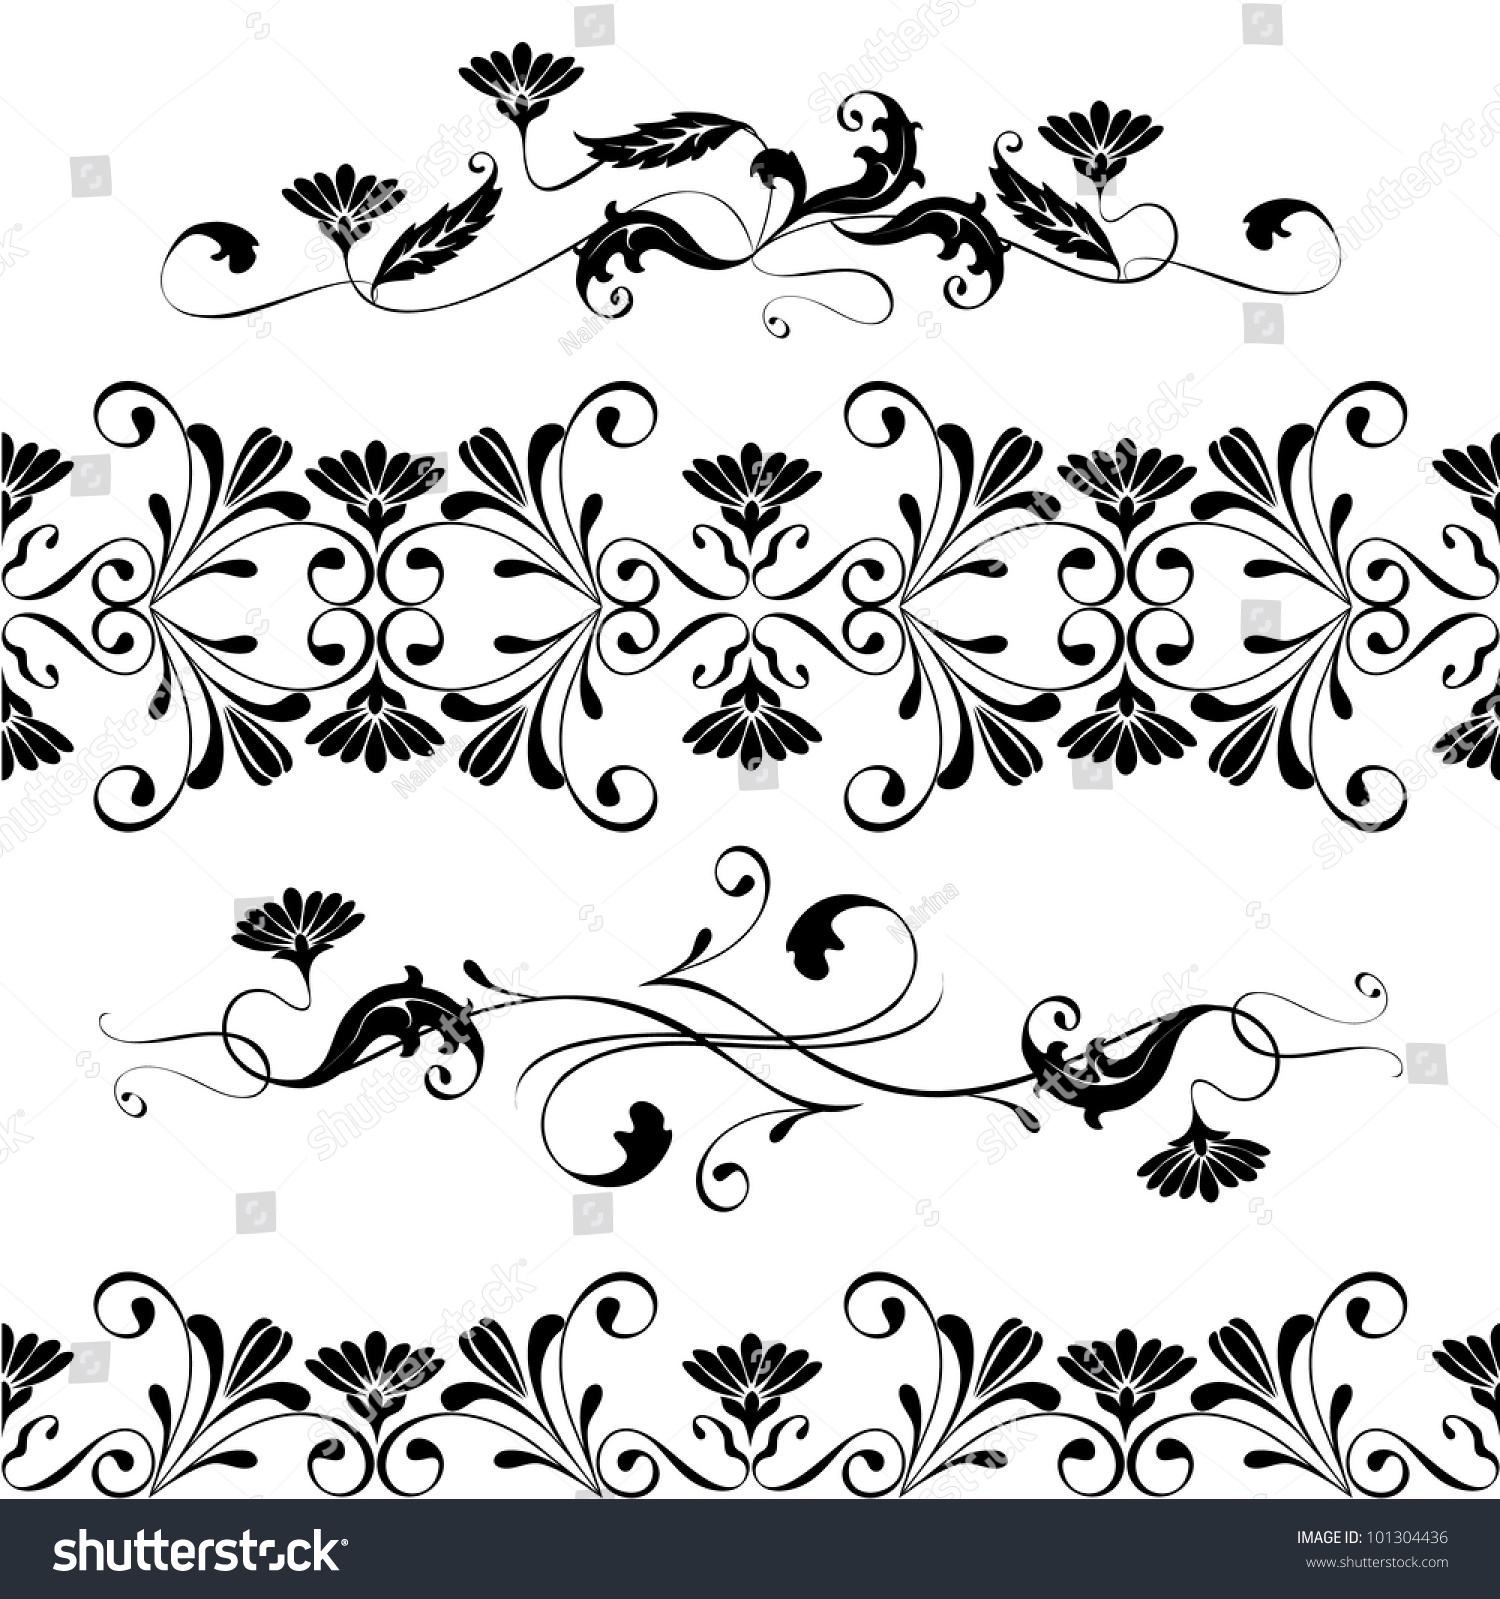 Decorative Black Flower Border Stock Image: Vector Set Swirling Decorative Floral Elements Stock